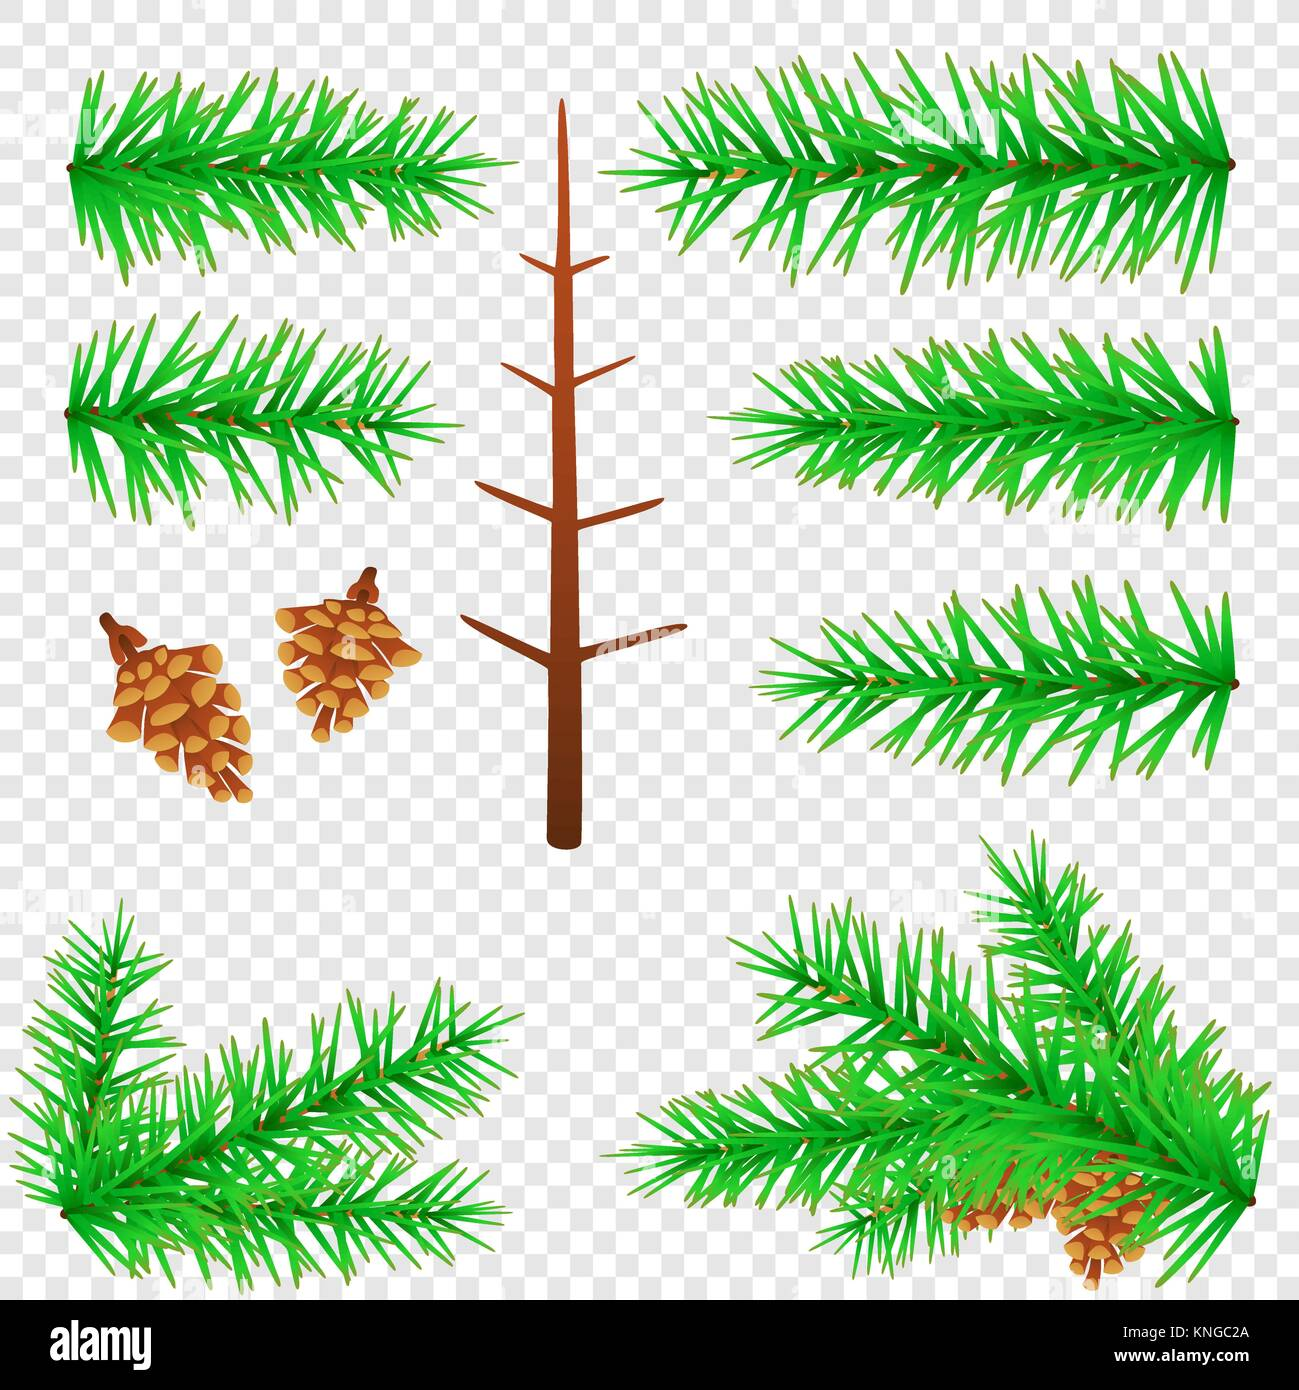 spruce branch transparent background - Stock Vector